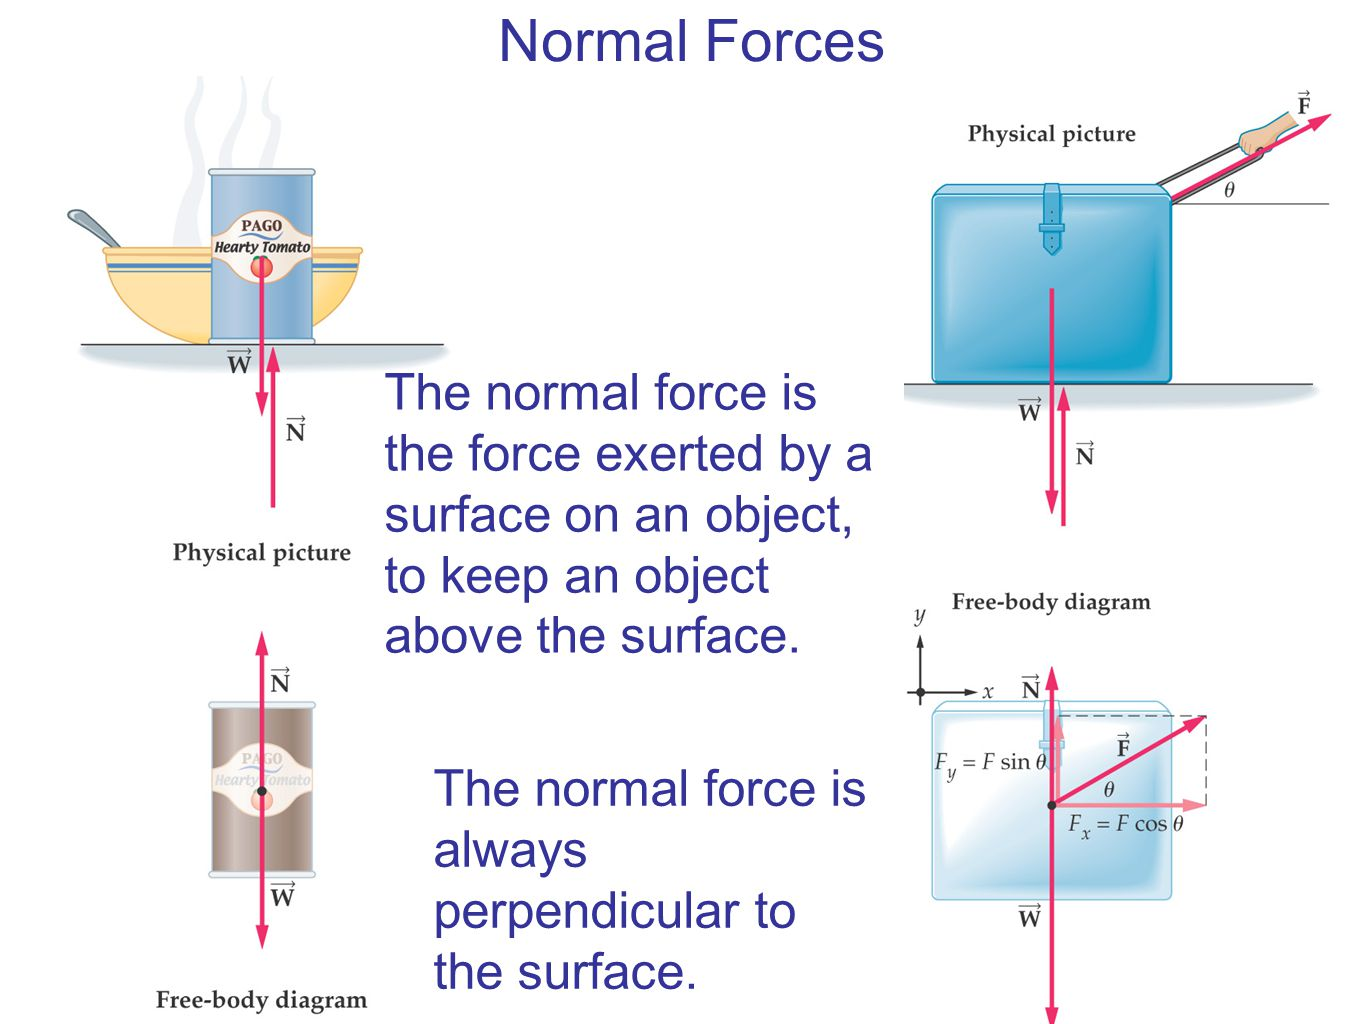 Normal Forces The normal force is the force exerted by a surface on an object, to keep an object above the surface.